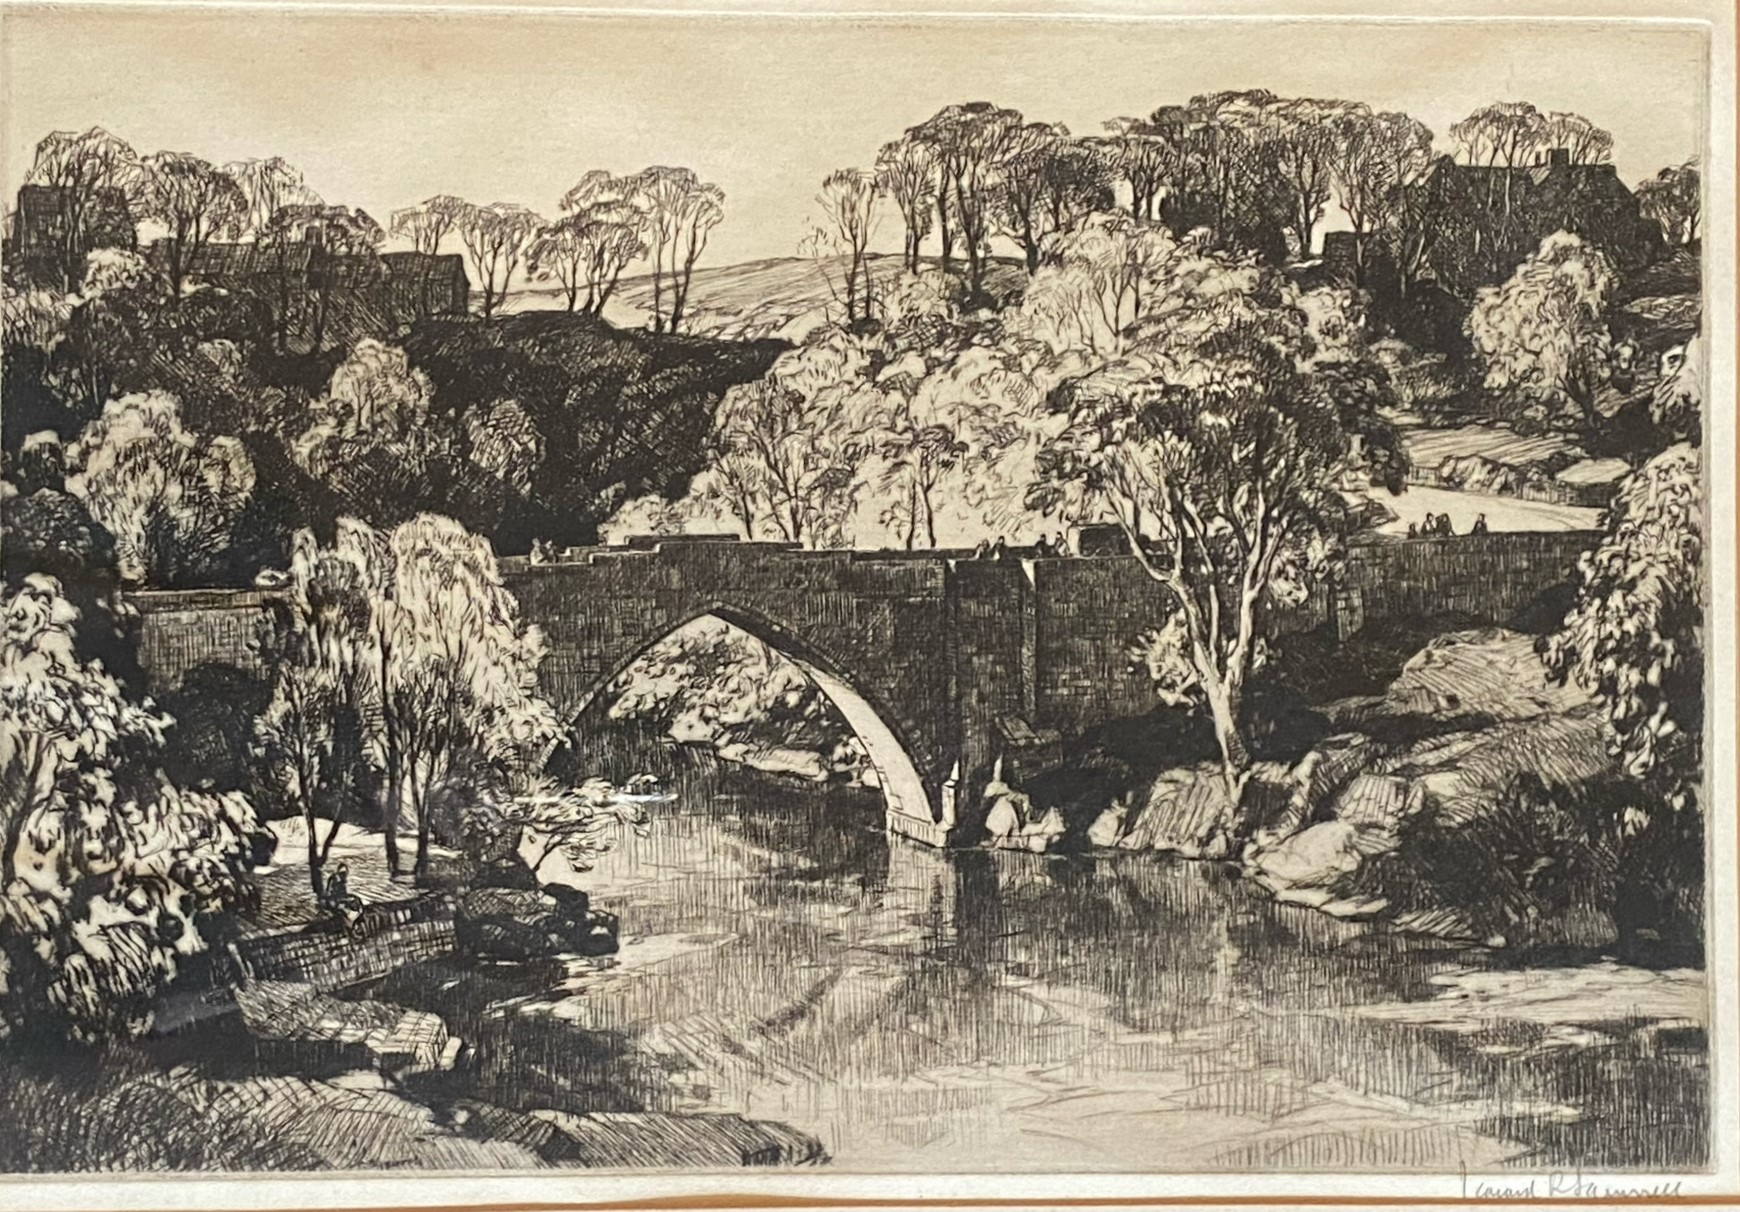 Leonard Russell Squirrel (RWS, RE, RI, PS, SGA 1893-1979) signed etching Brig O'Gowrie Deeside